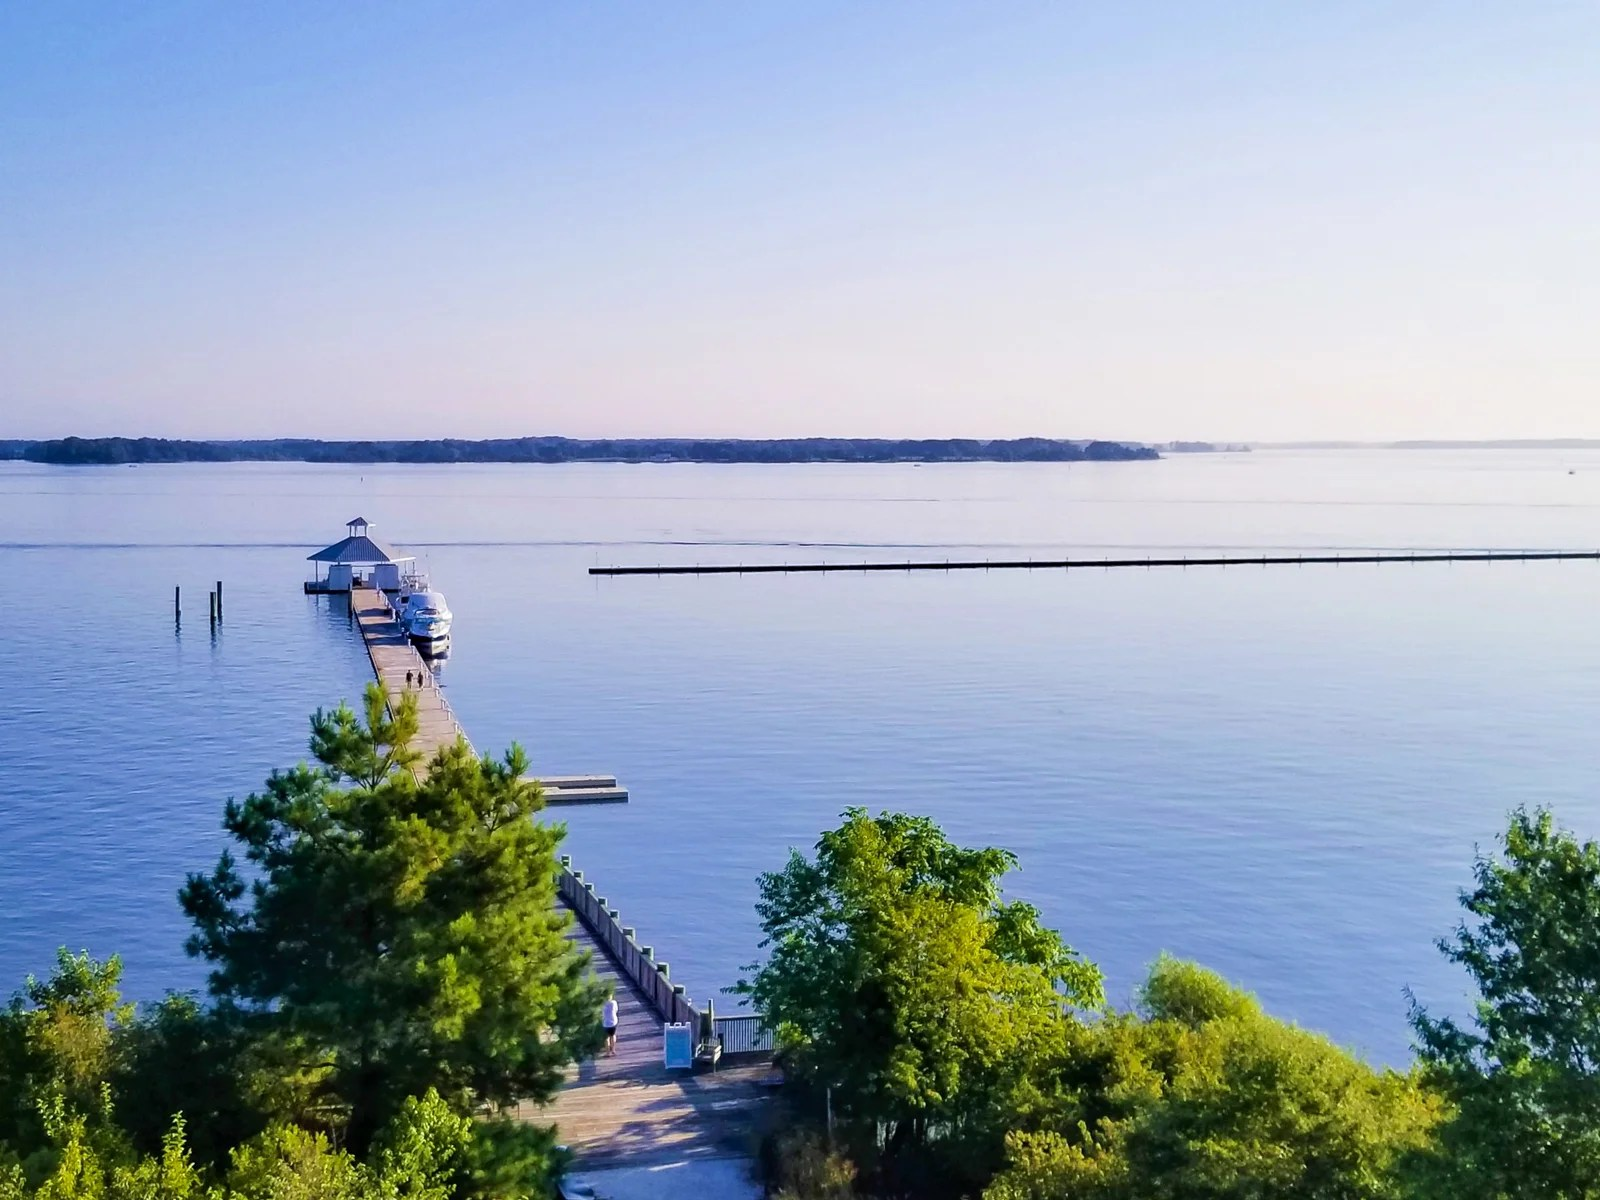 Family Fun, Even for the Dog: A Review of the Hyatt Regency Chesapeake Bay Resort